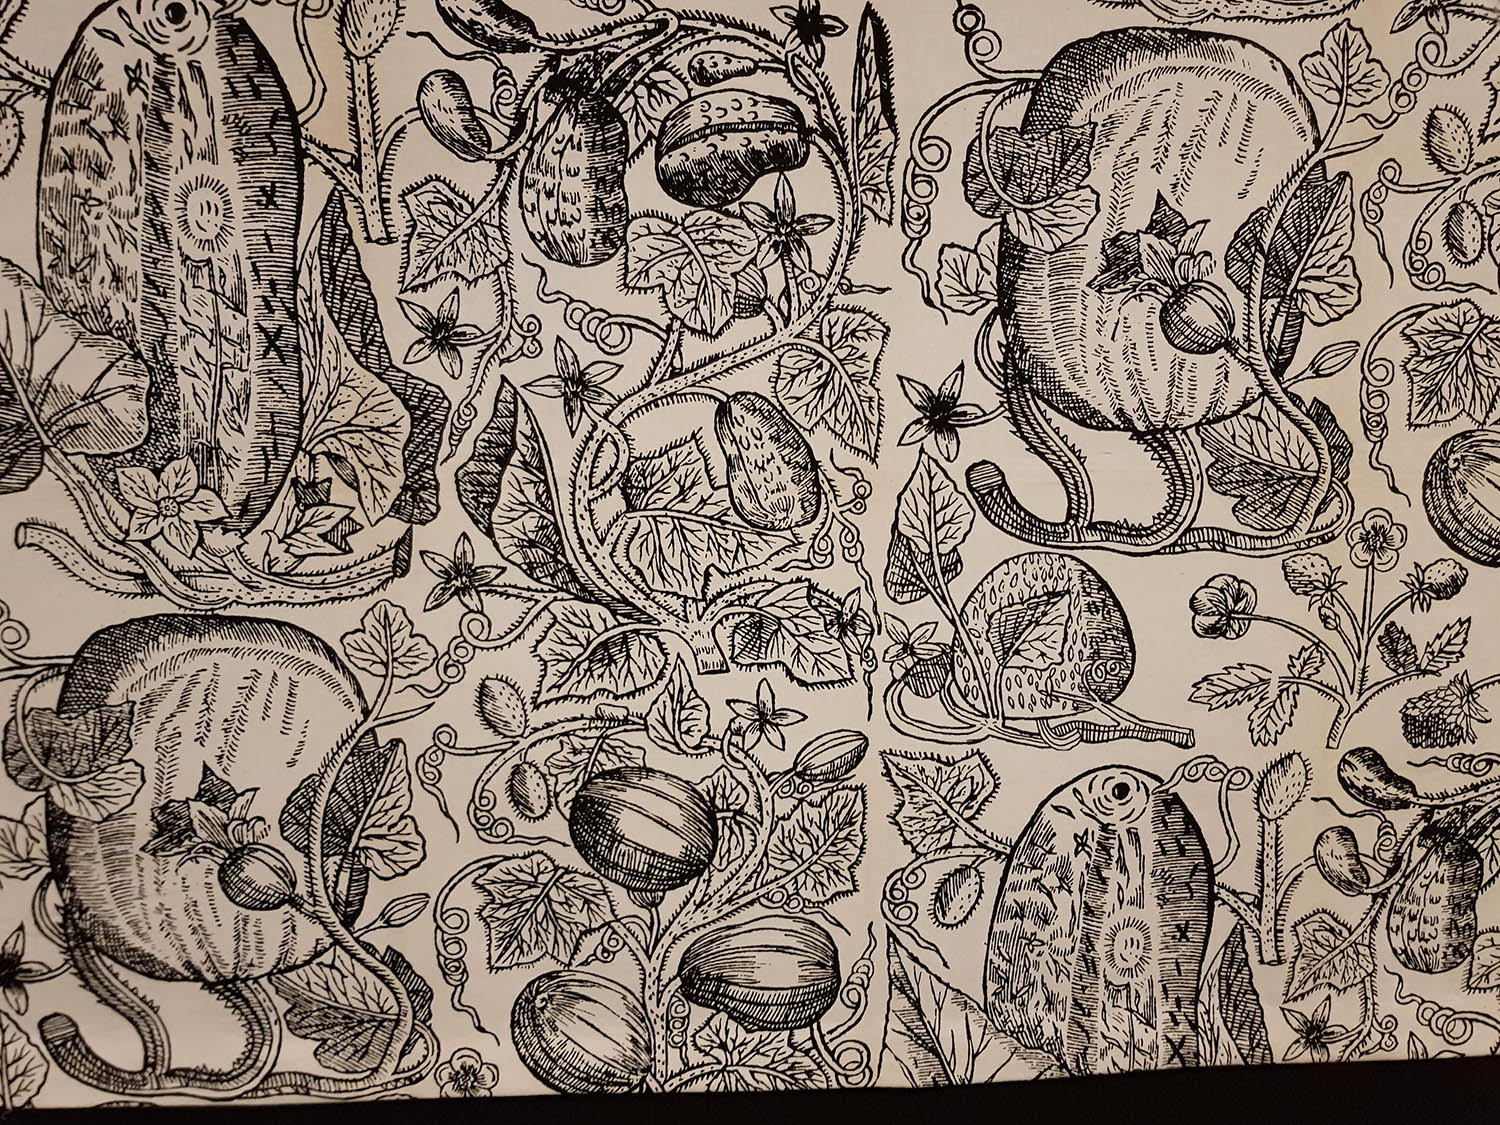 The rich etching of fruit and leaves. I'm guessing this could be William Morris?